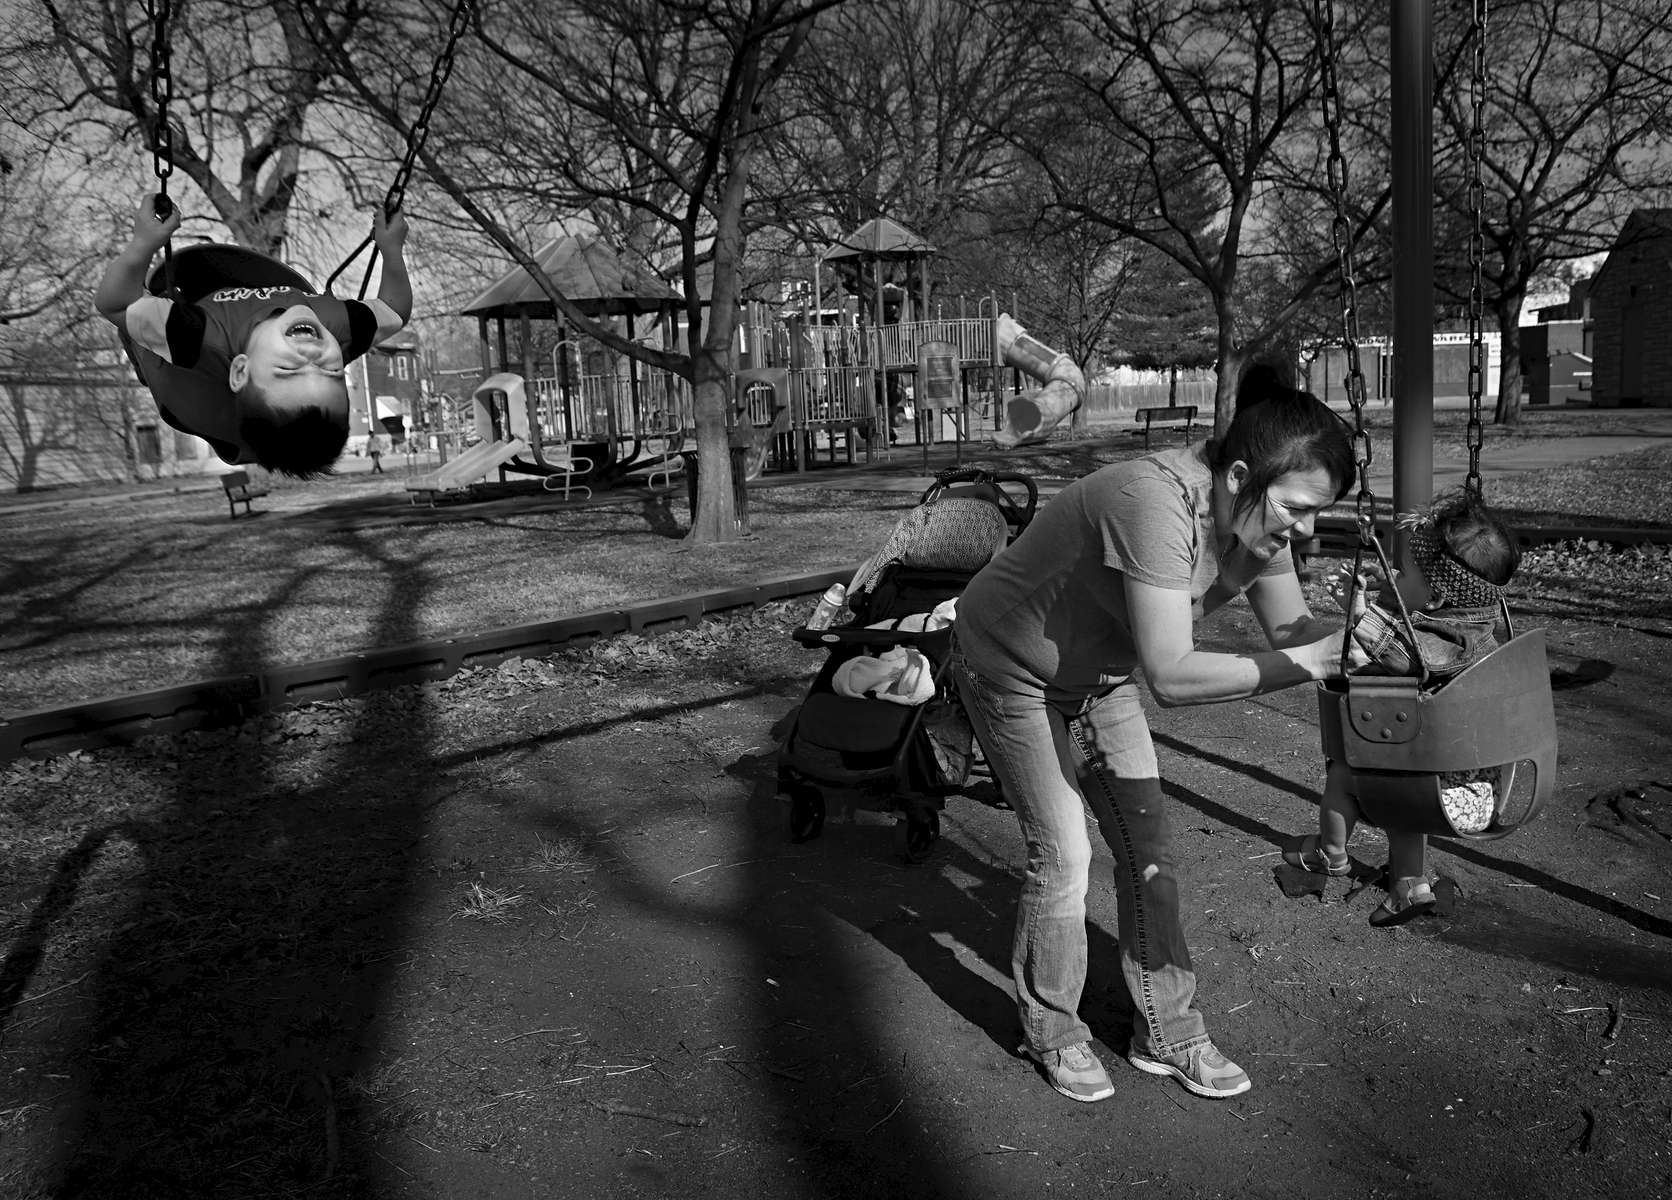 Travis Garner, 3, goes high on the swings as his aunt Josie Martinez prepares to give Travis's sister Amya Garner, 8 months, a push at South St. Louis Square Park in St. Louis on Tuesday, Feb. 7, 2017. Martinez takes the children to the park often but makes Travis wait on a bench until she makes sure the playground is free of dirty syringes.